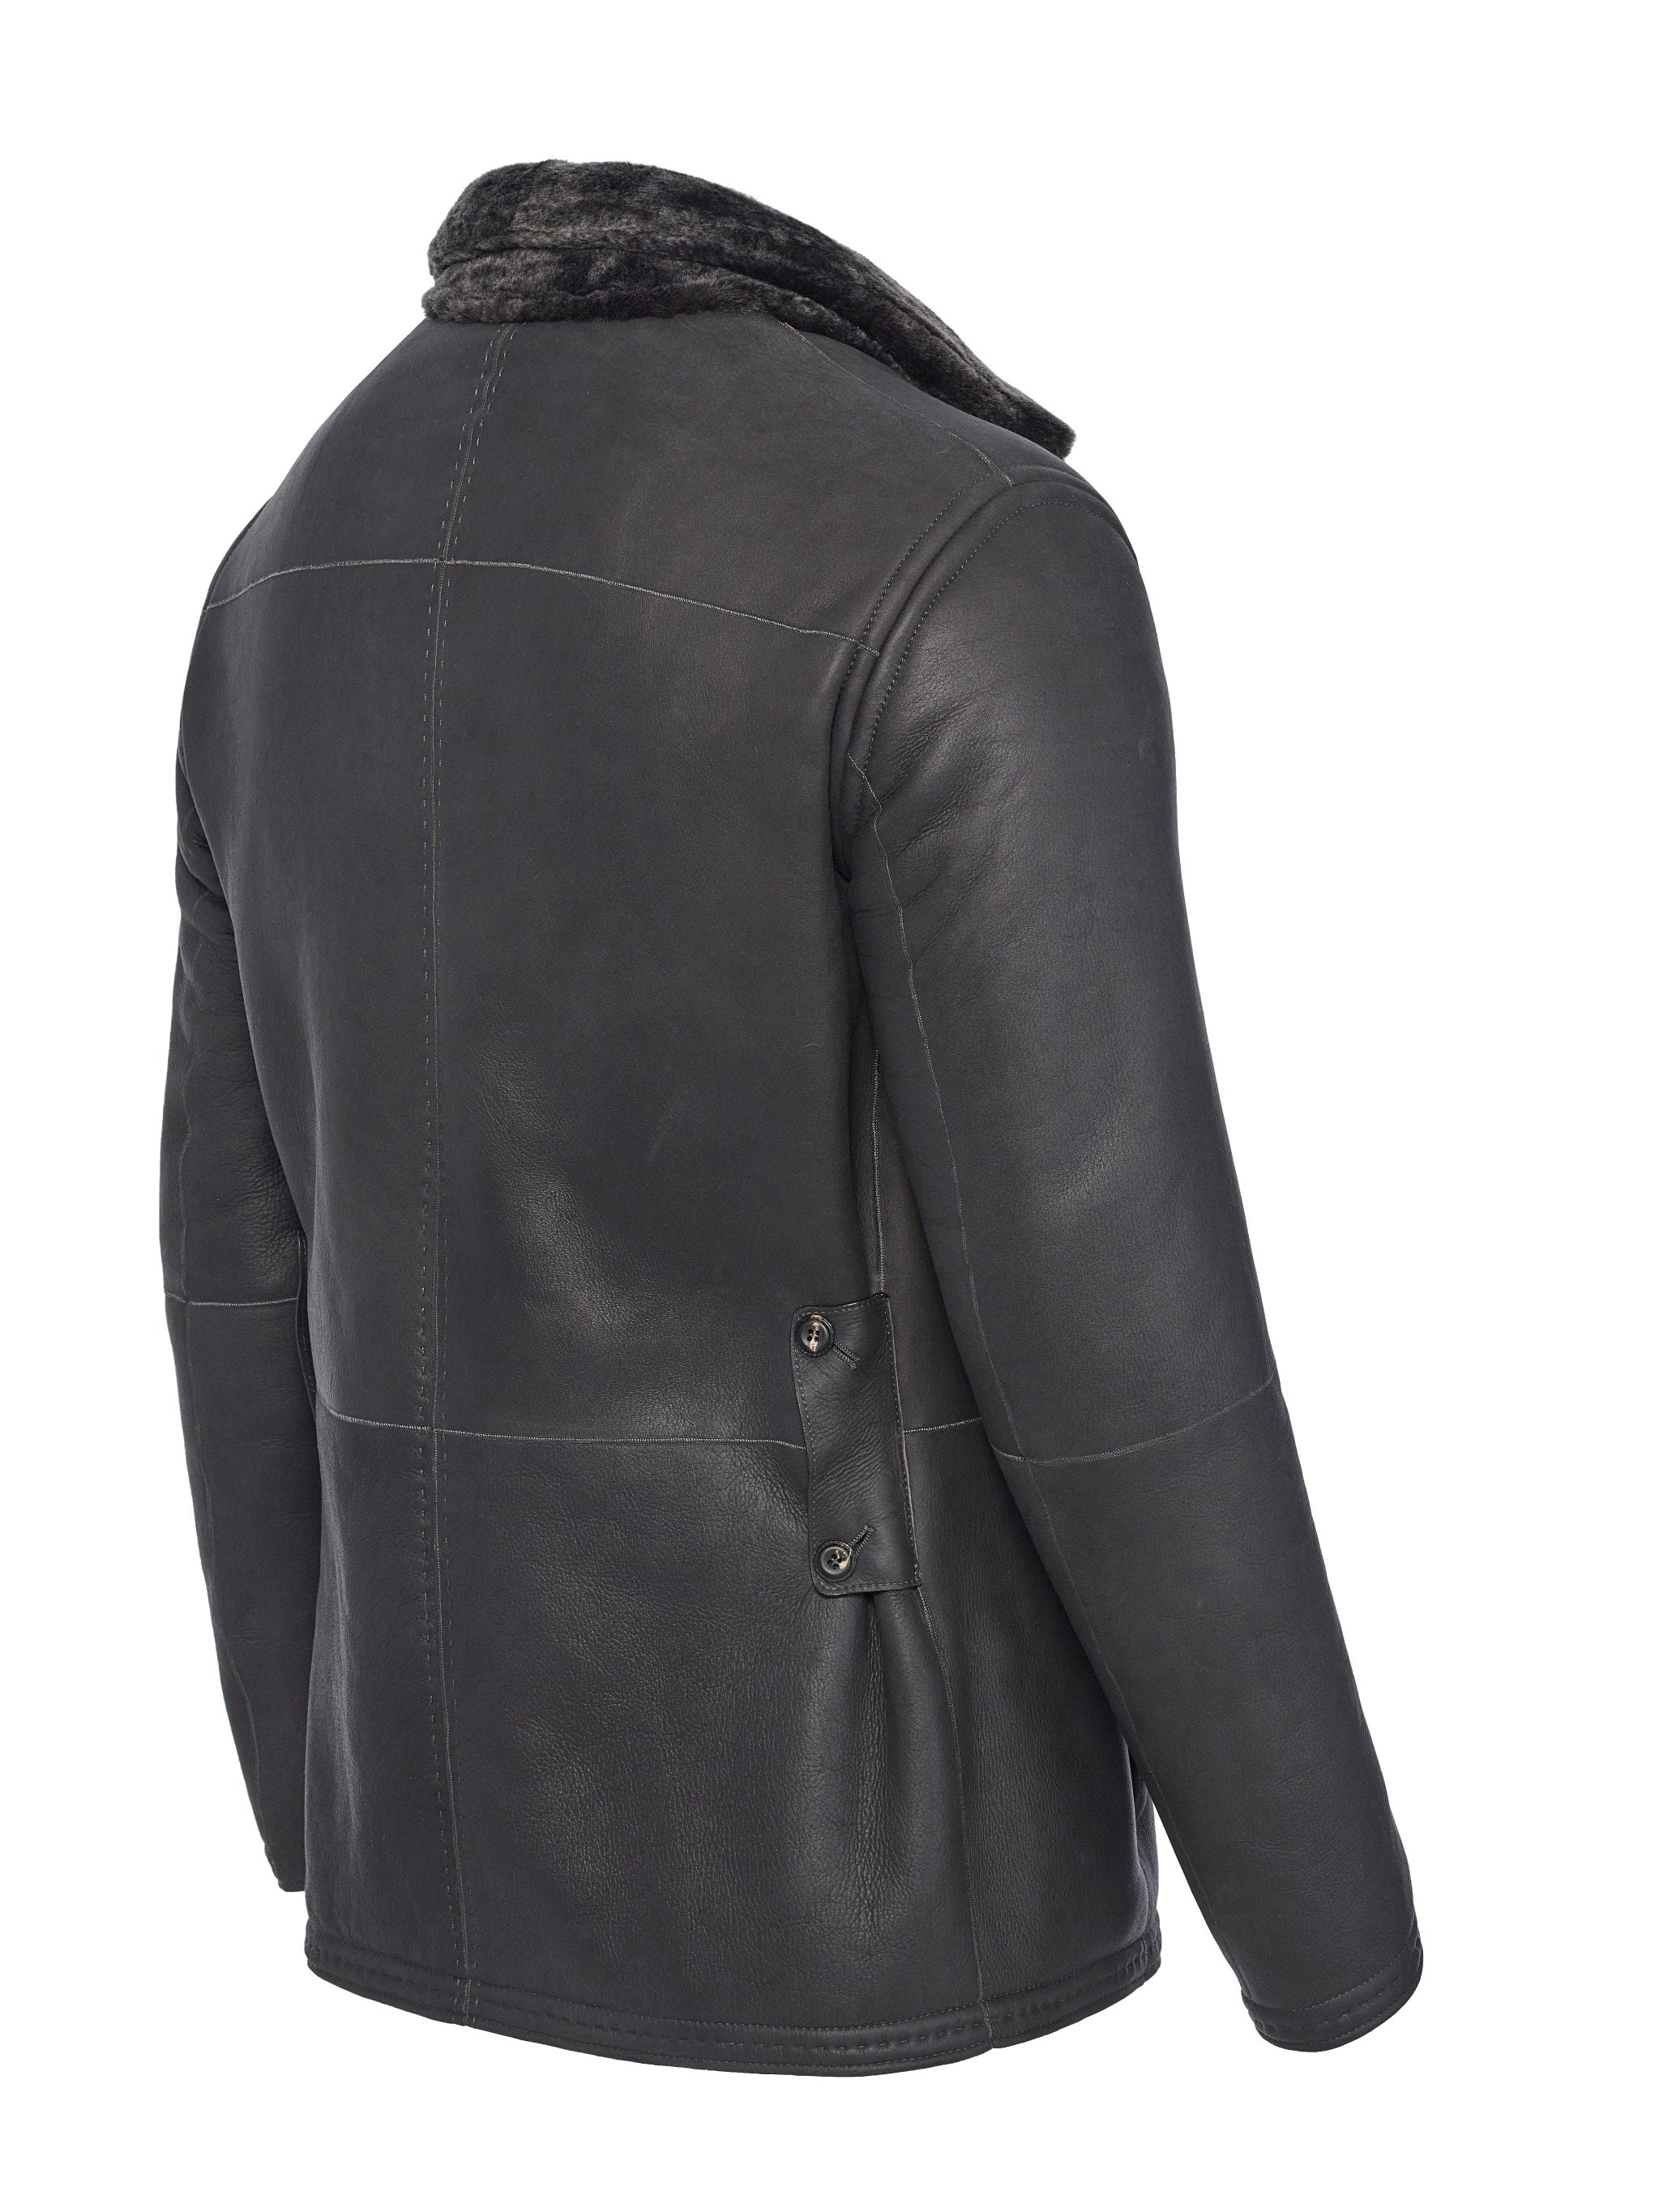 Nappa side view of reversible shearling